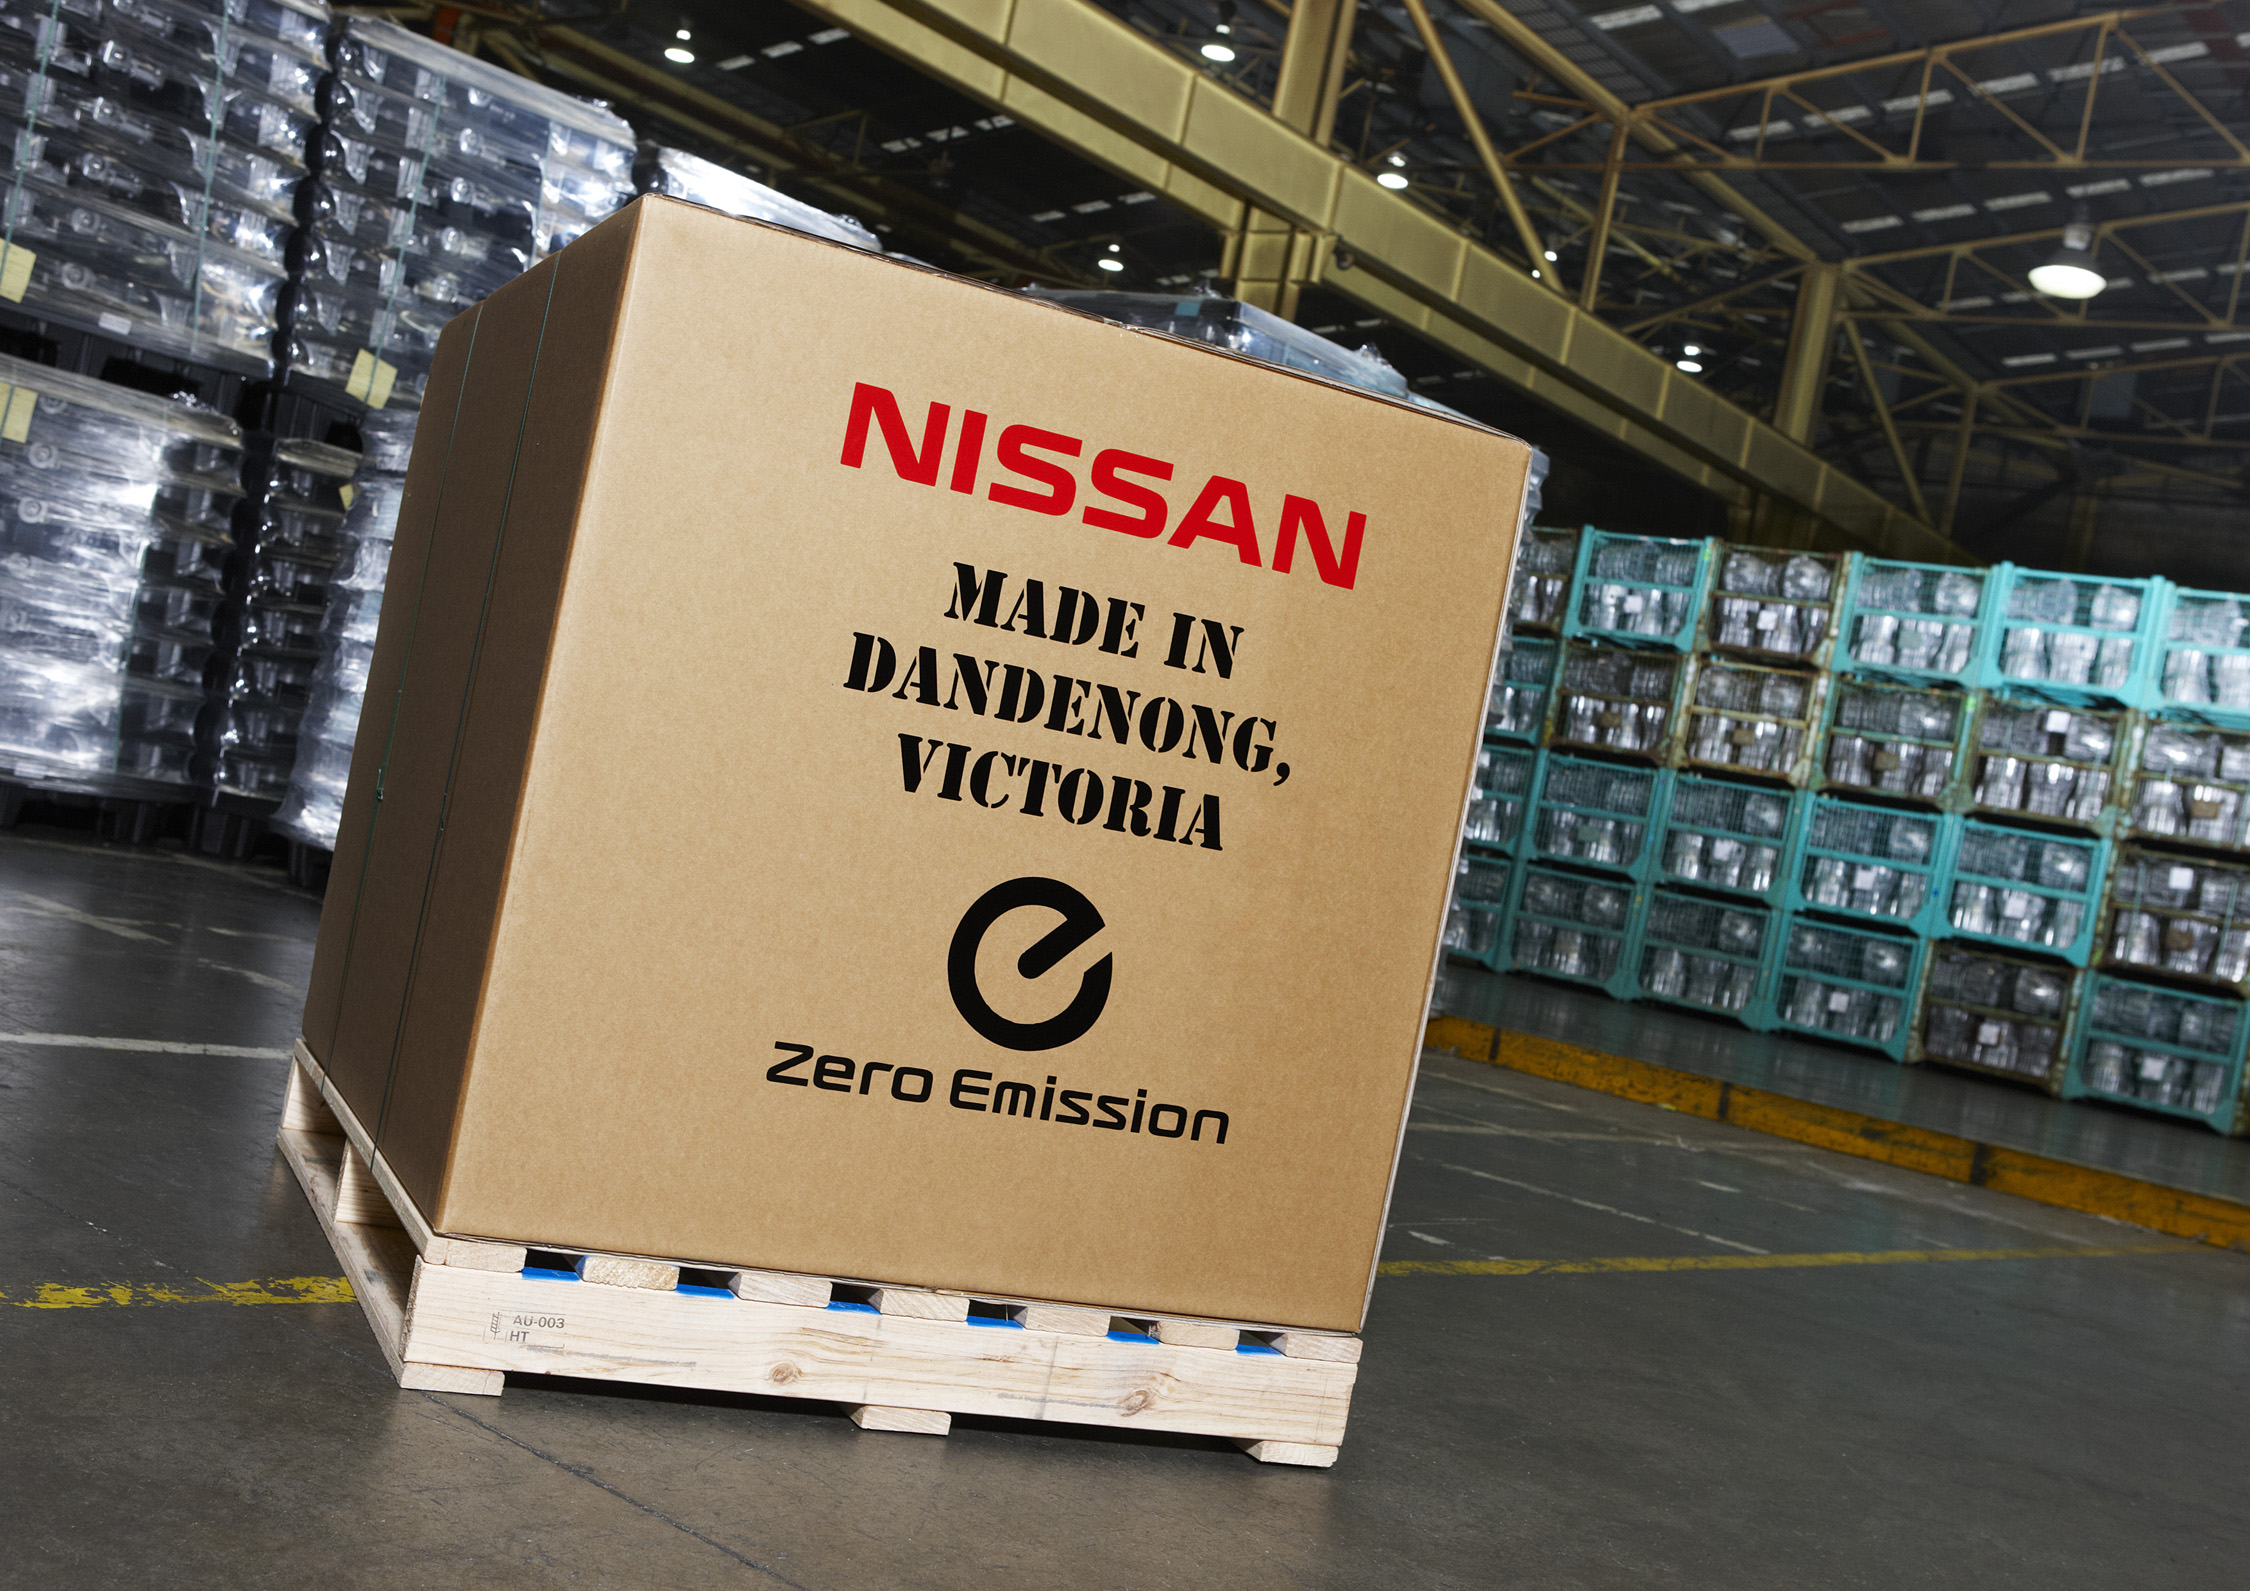 Nissan will send the parts made in Victoria to markets around the world.